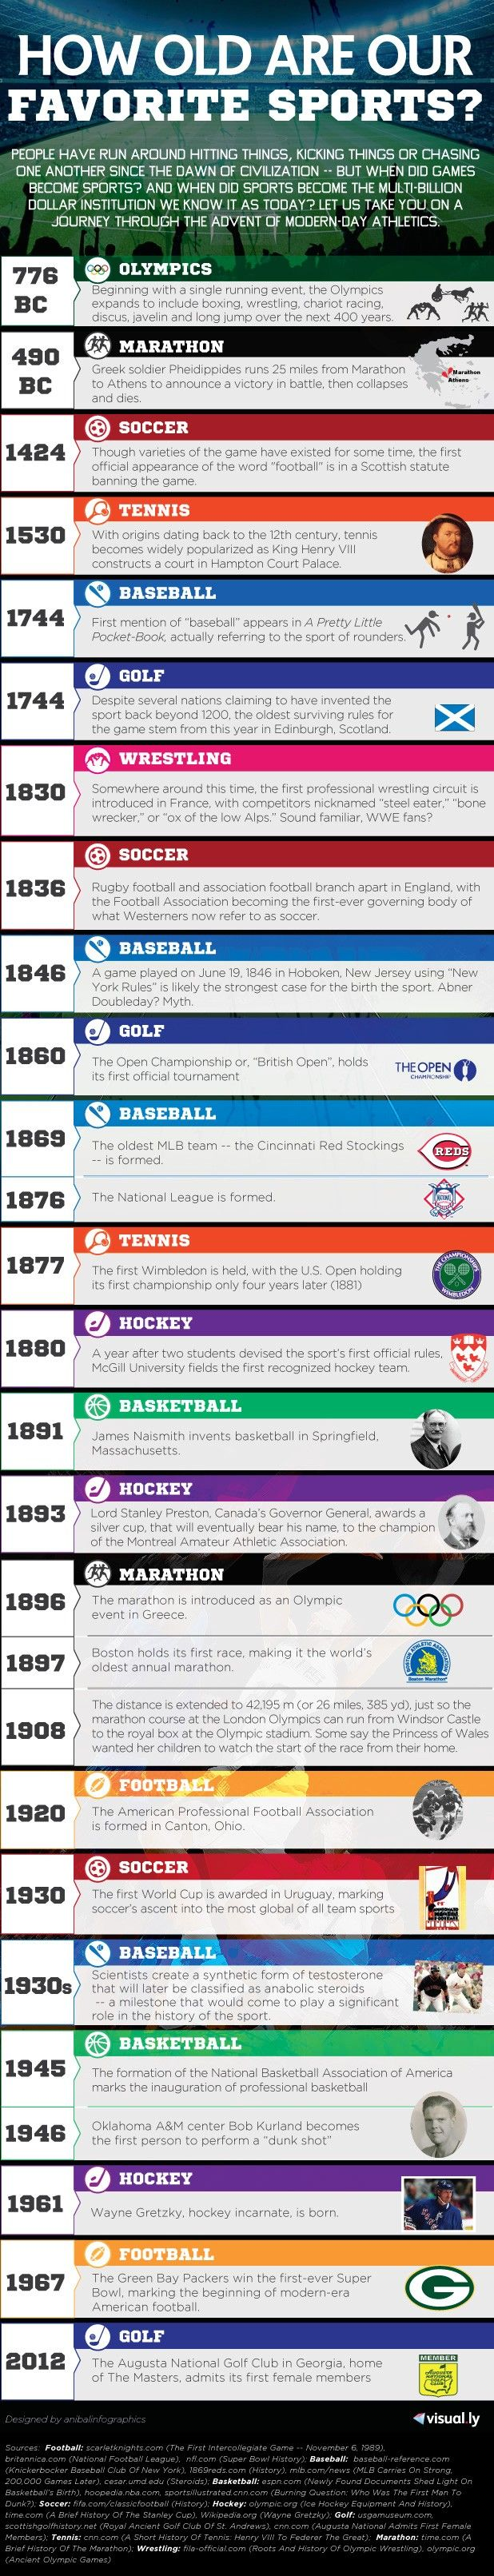 How old are our favorite sports? - link shared by jonathanmay224.spreadable.info